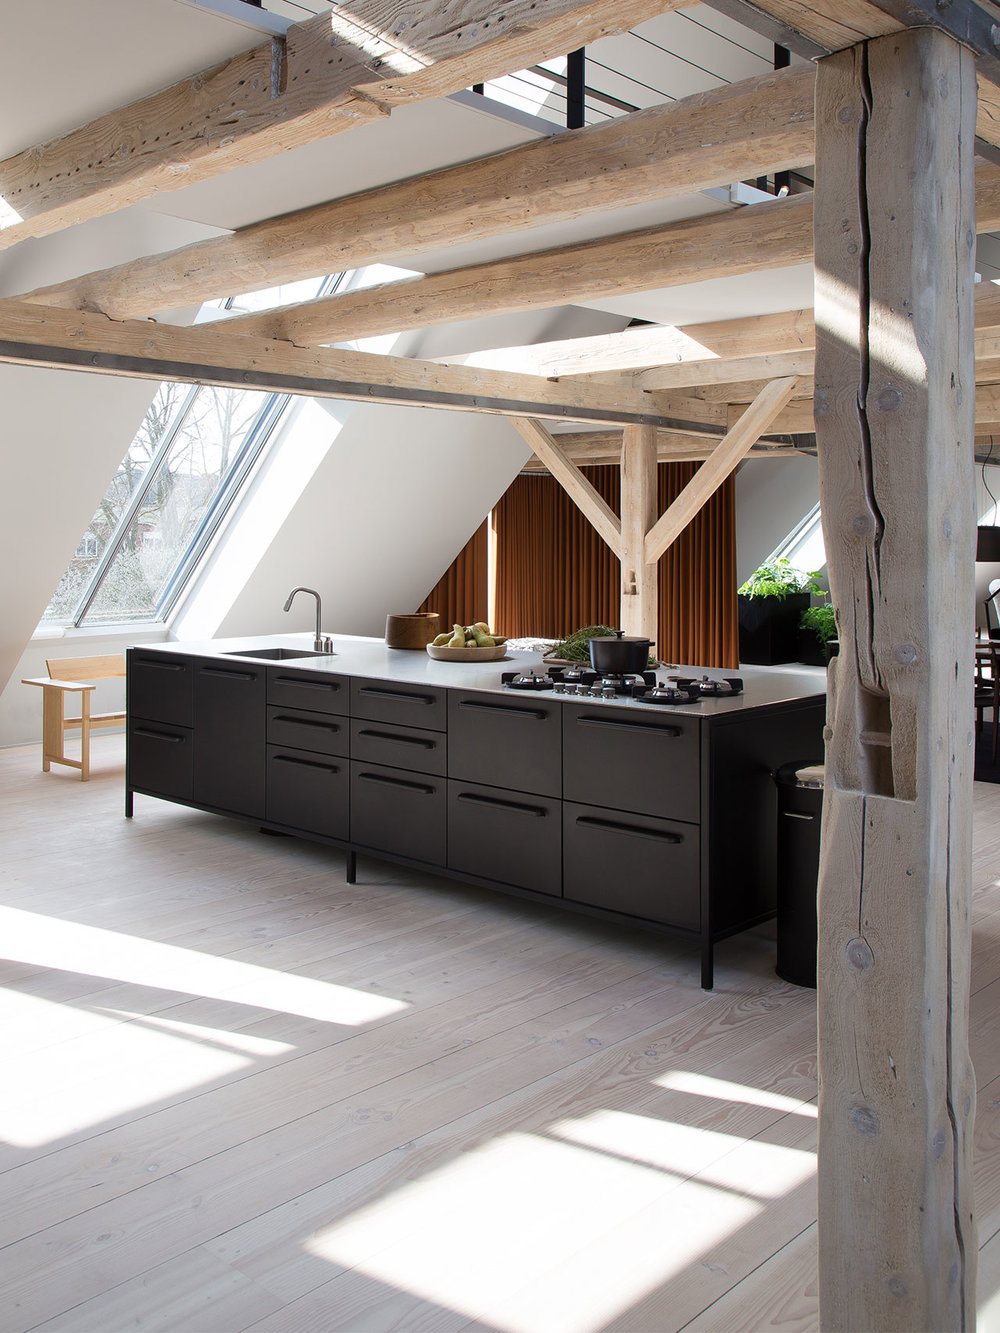 xvipp-kitchen-loft-4_0.jpg.pagespeed.ic.vY_NU4r13M.jpg